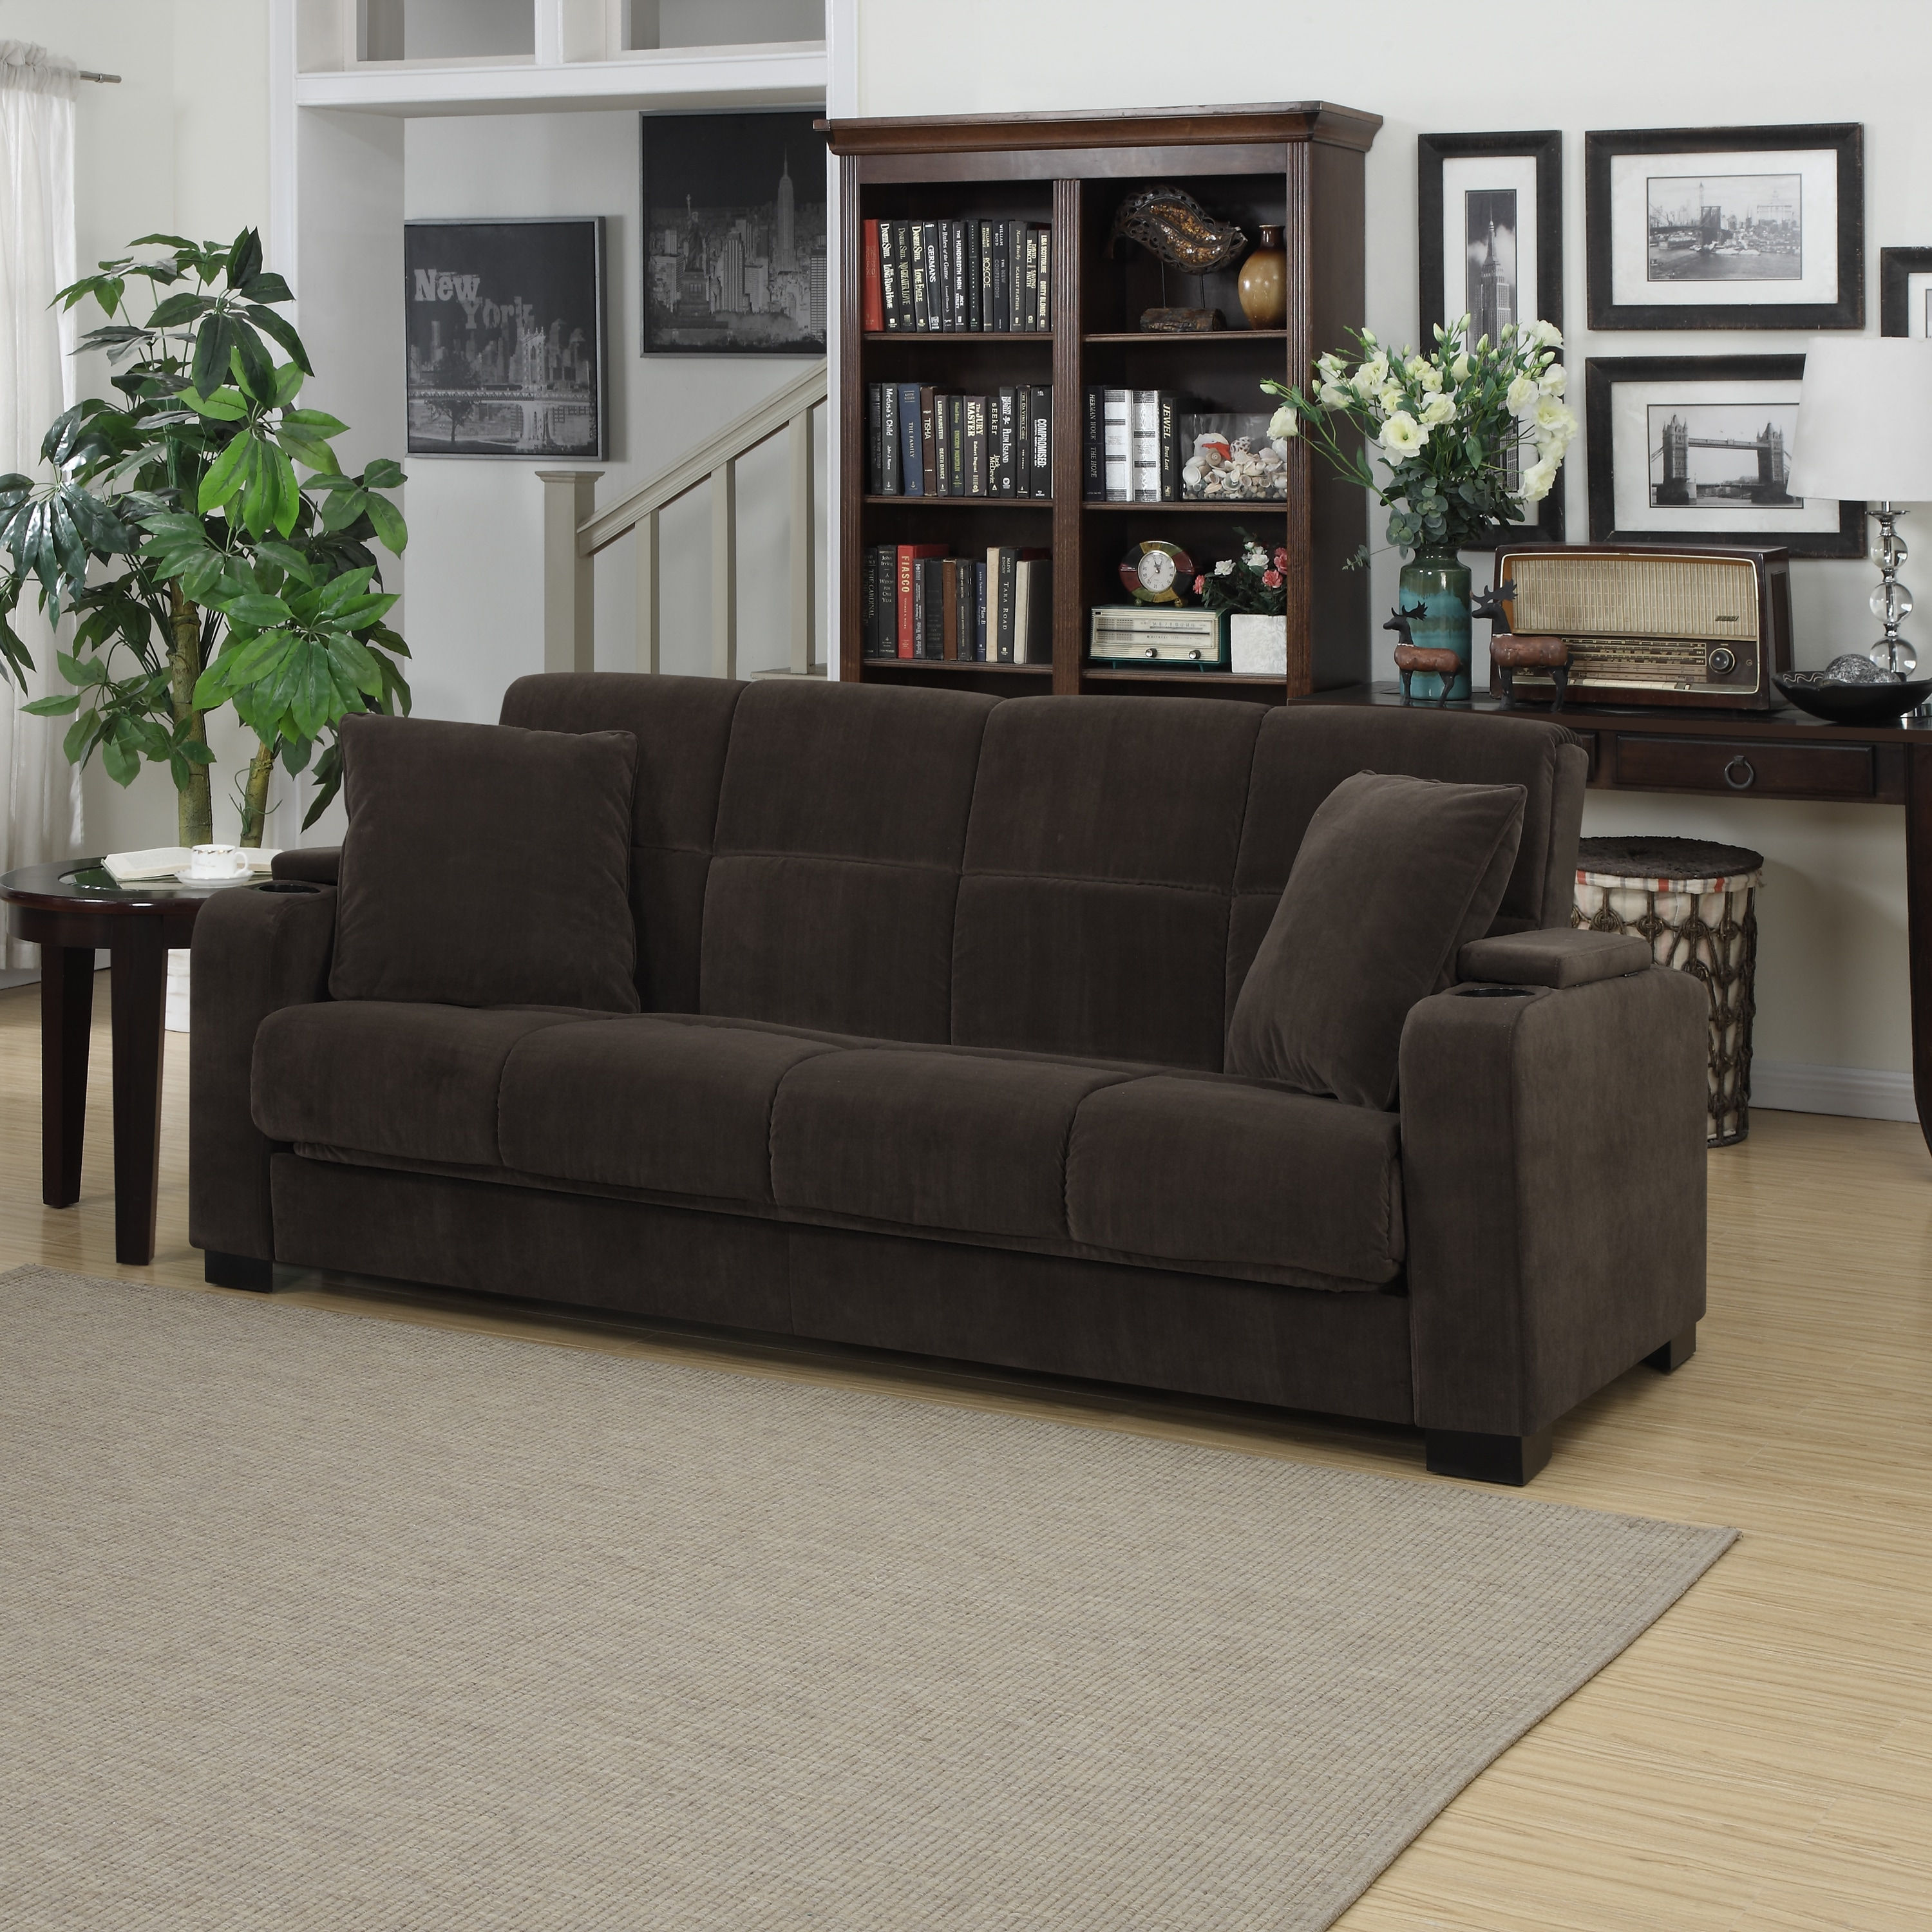 Large Sofa Beds Everyday Use Buy Sleeper Sofa Online At Overstock Our Best Living Room